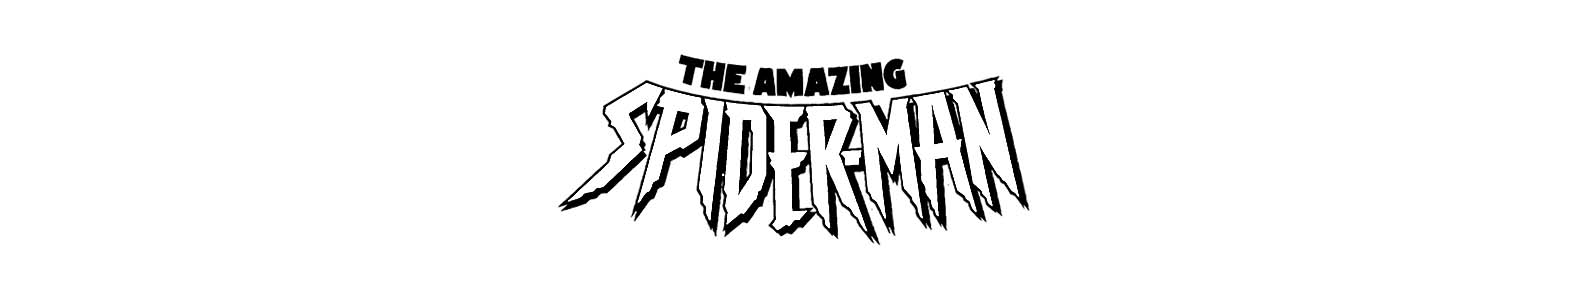 Spider-Man brand header image